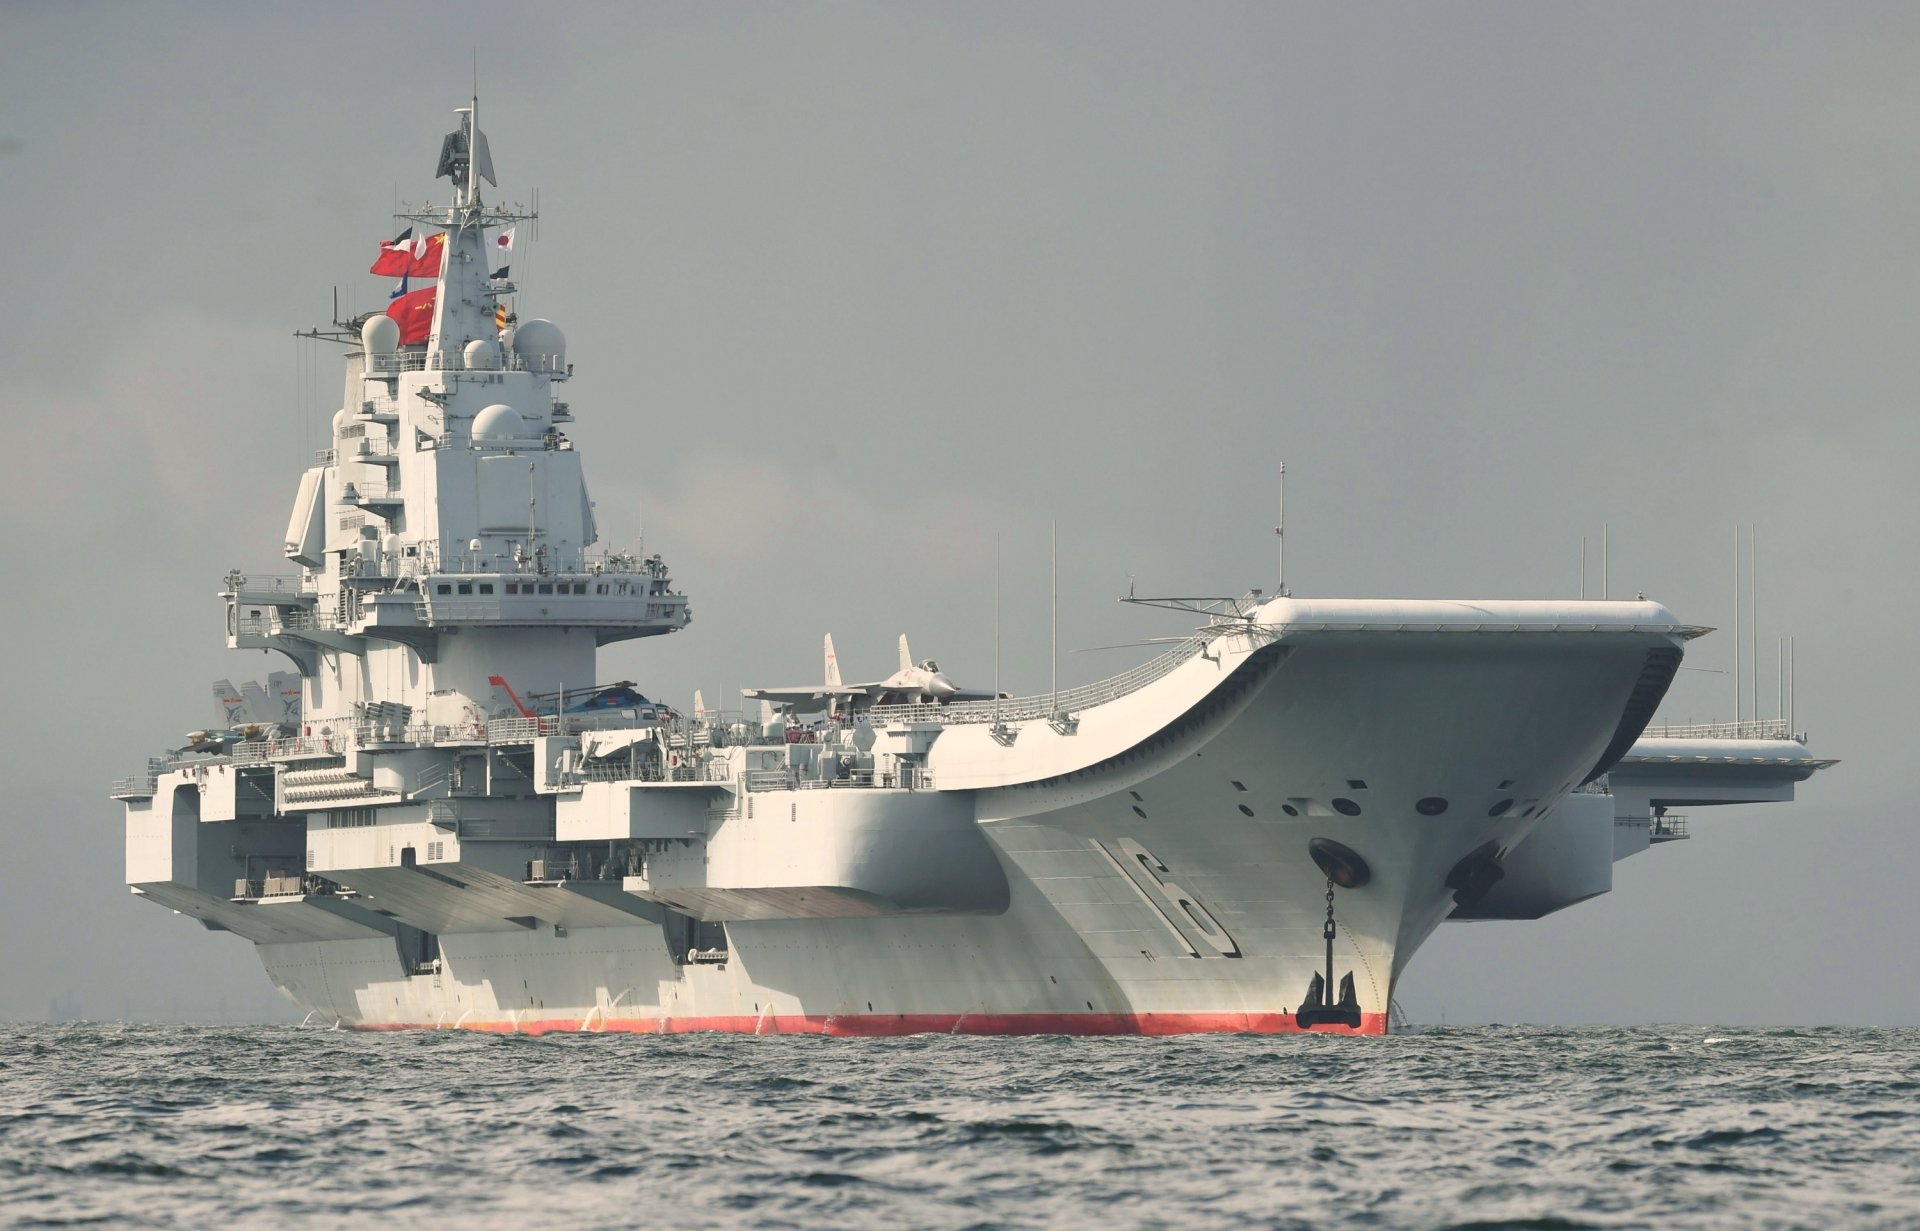 Military - Chinese aircraft carrier Liaoning  Warship Aircraft Carrier Wallpaper